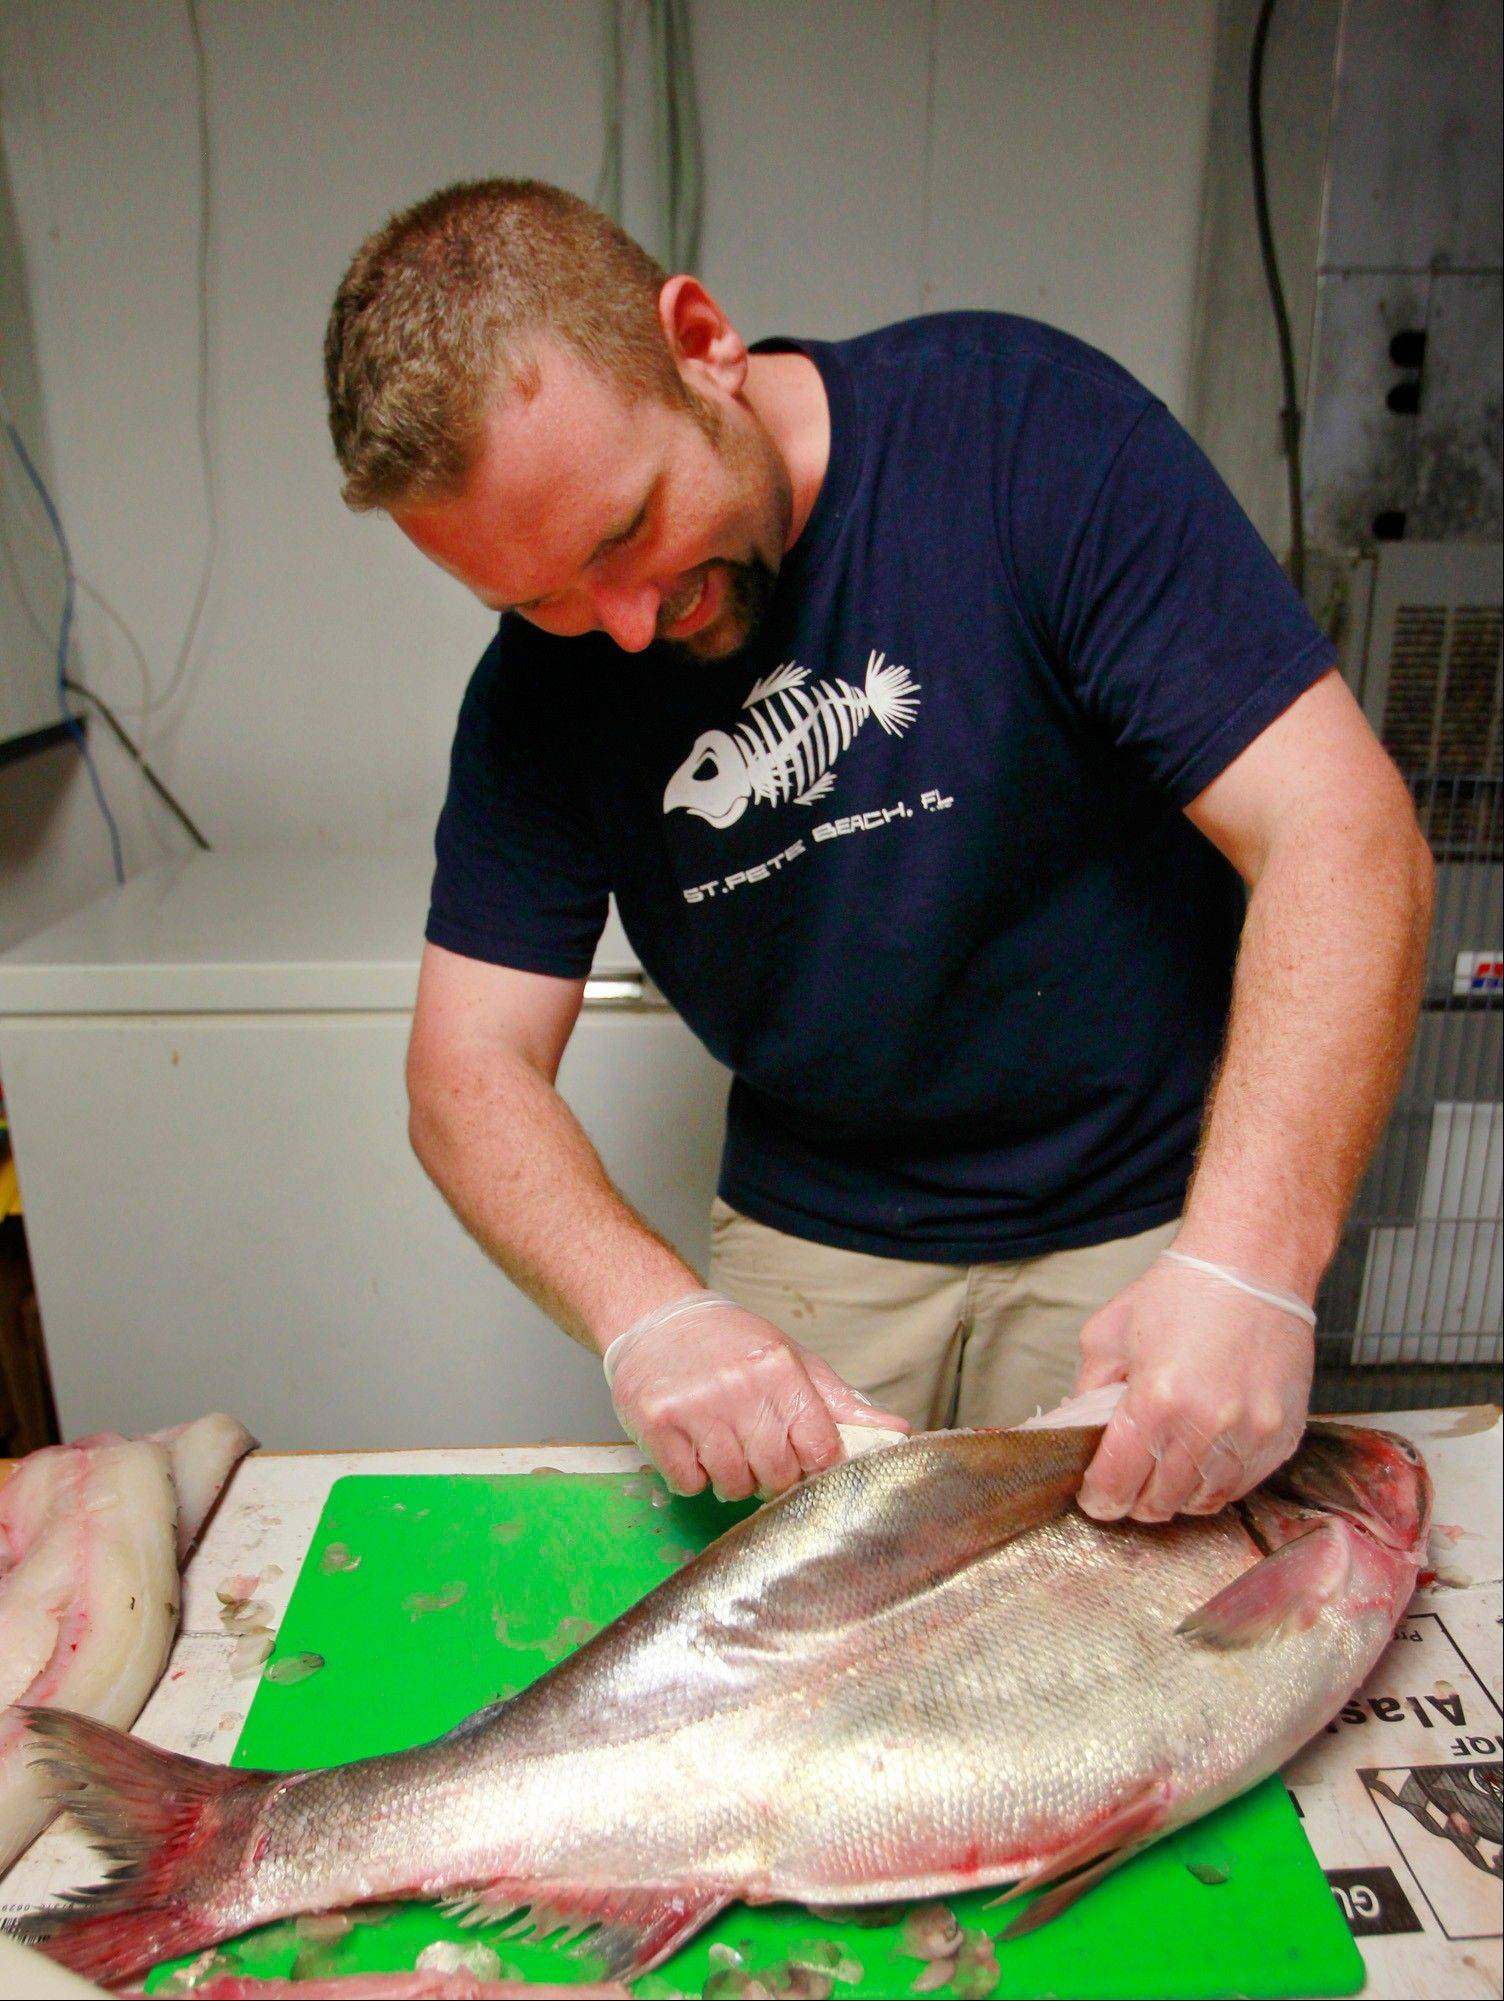 Clint Carter fillets a silver Asian carp, an invasive species that poses a threat to native fish in Illinois waterways, at Carter's Fish Market in Springfield.